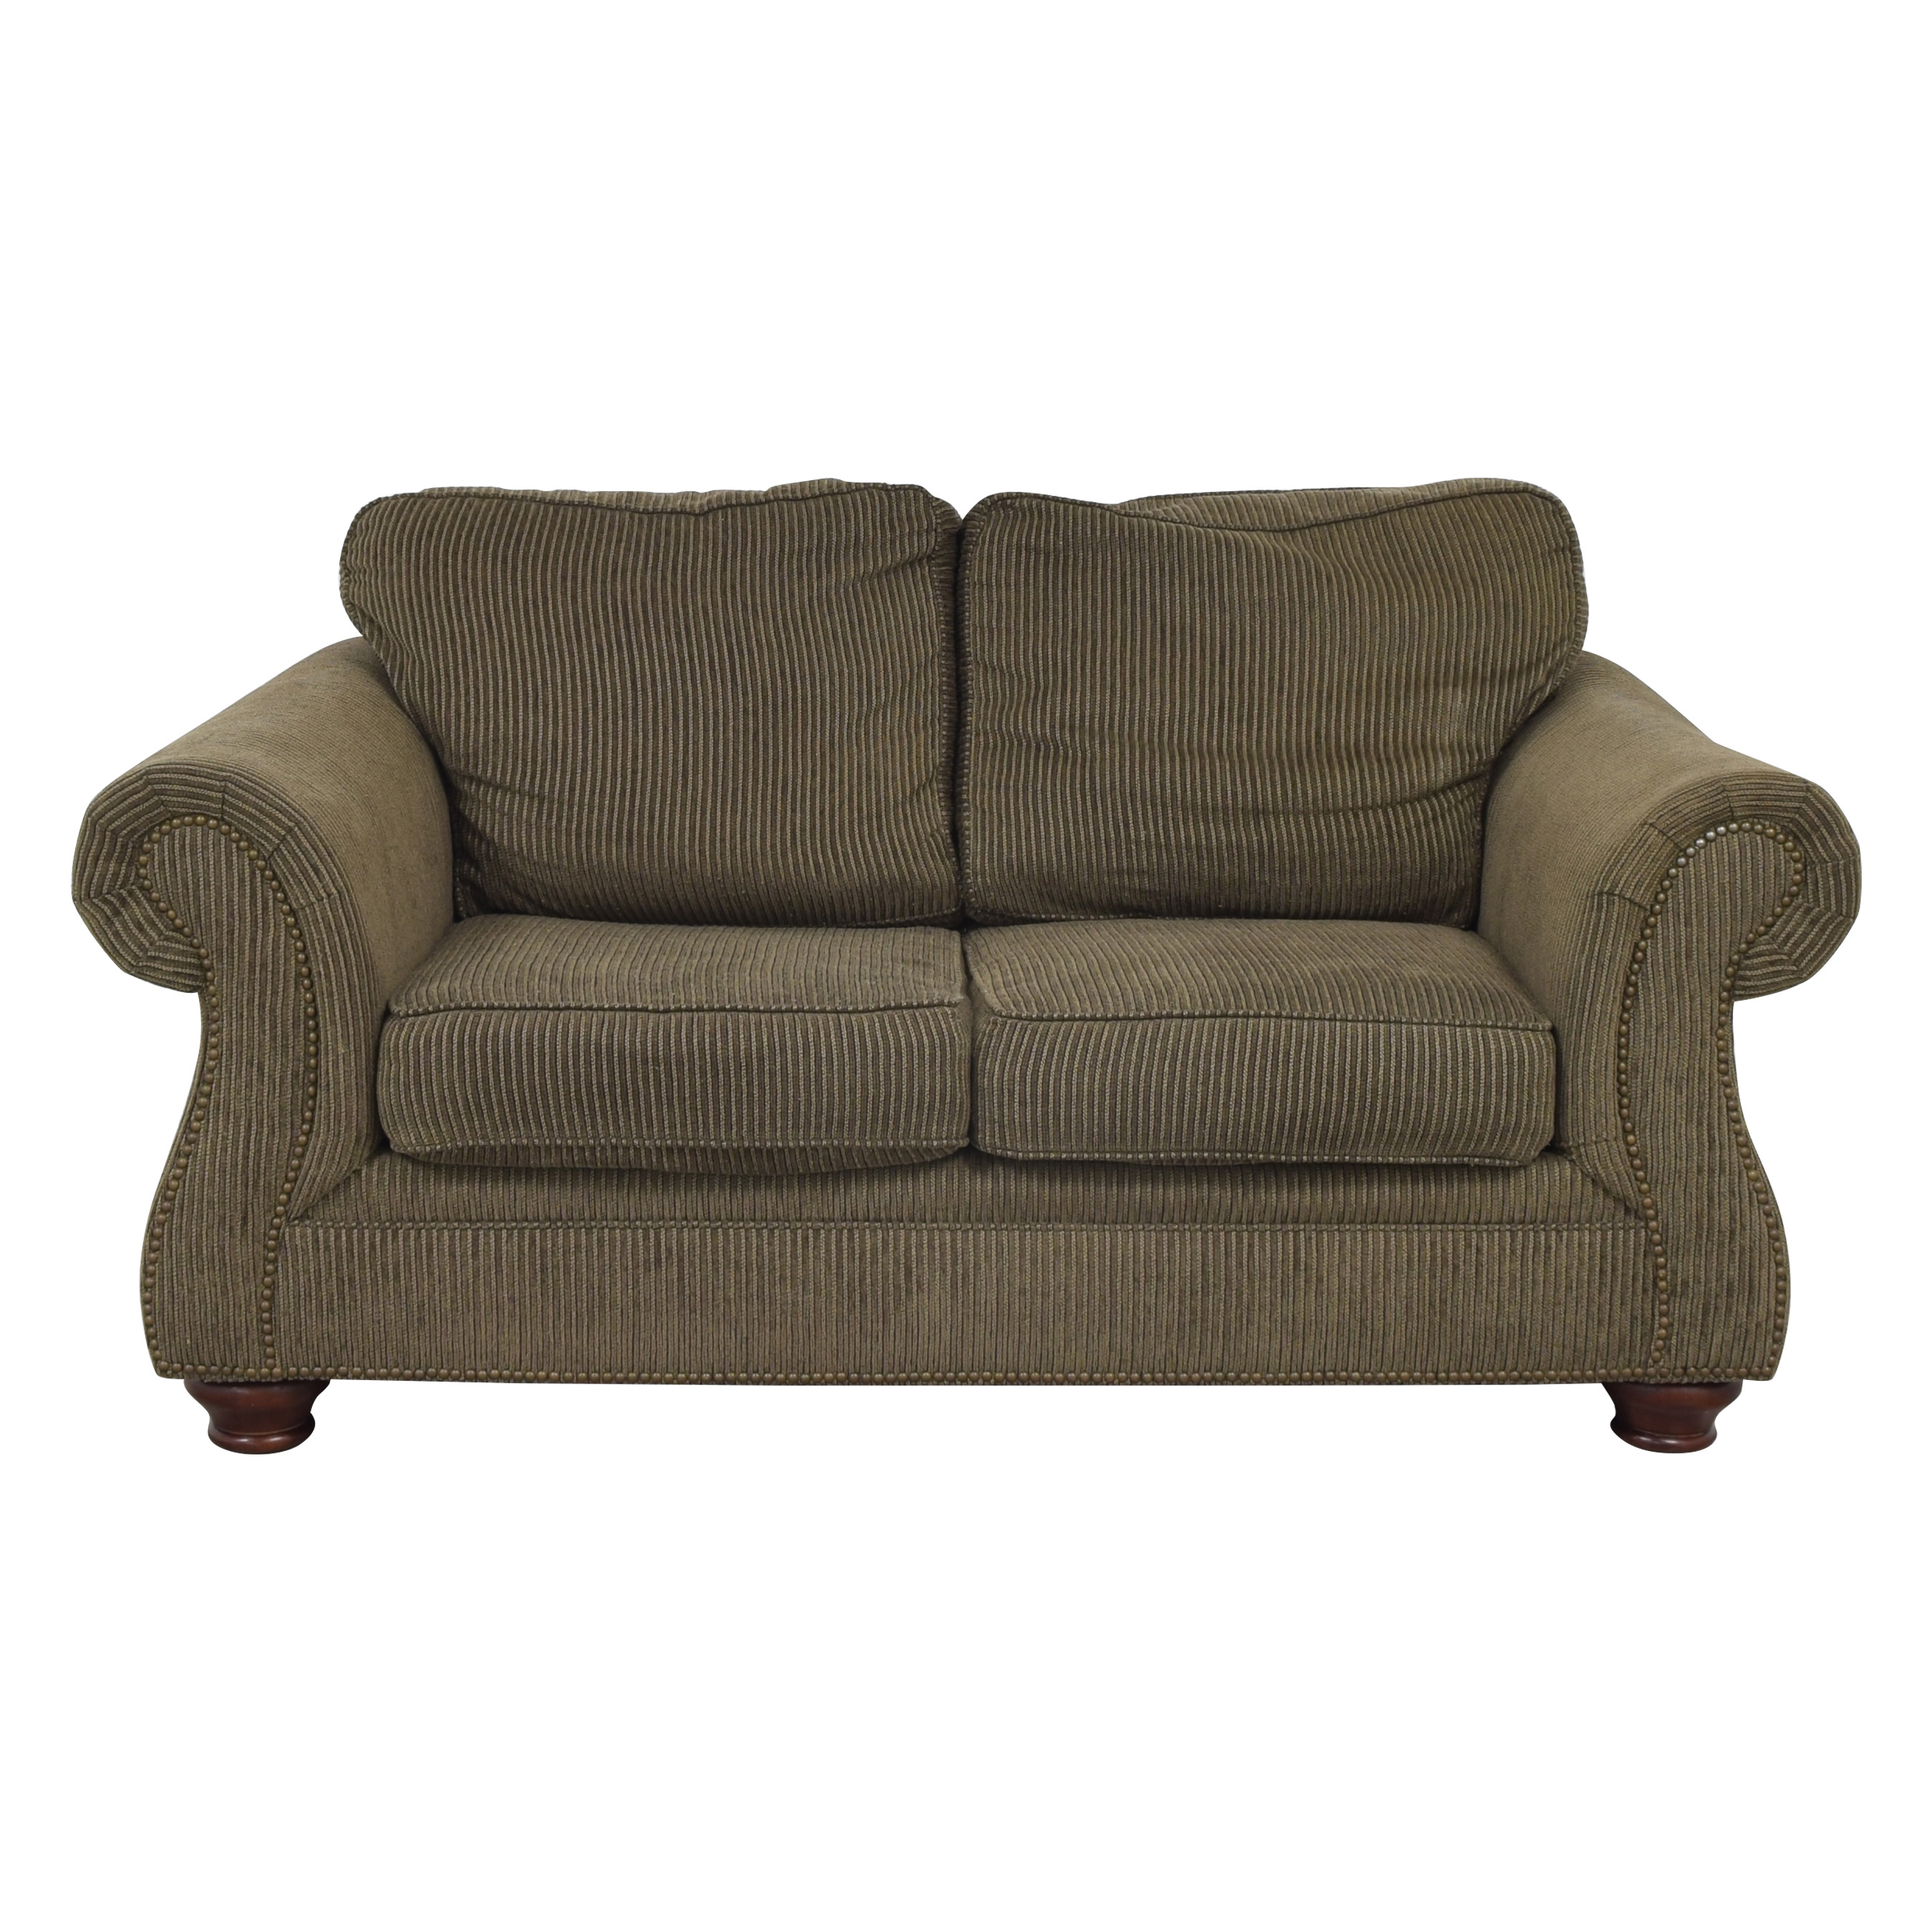 Raymour & Flanigan Raymour & Flanigan Broyhill Roll Arm Loveseat dark green